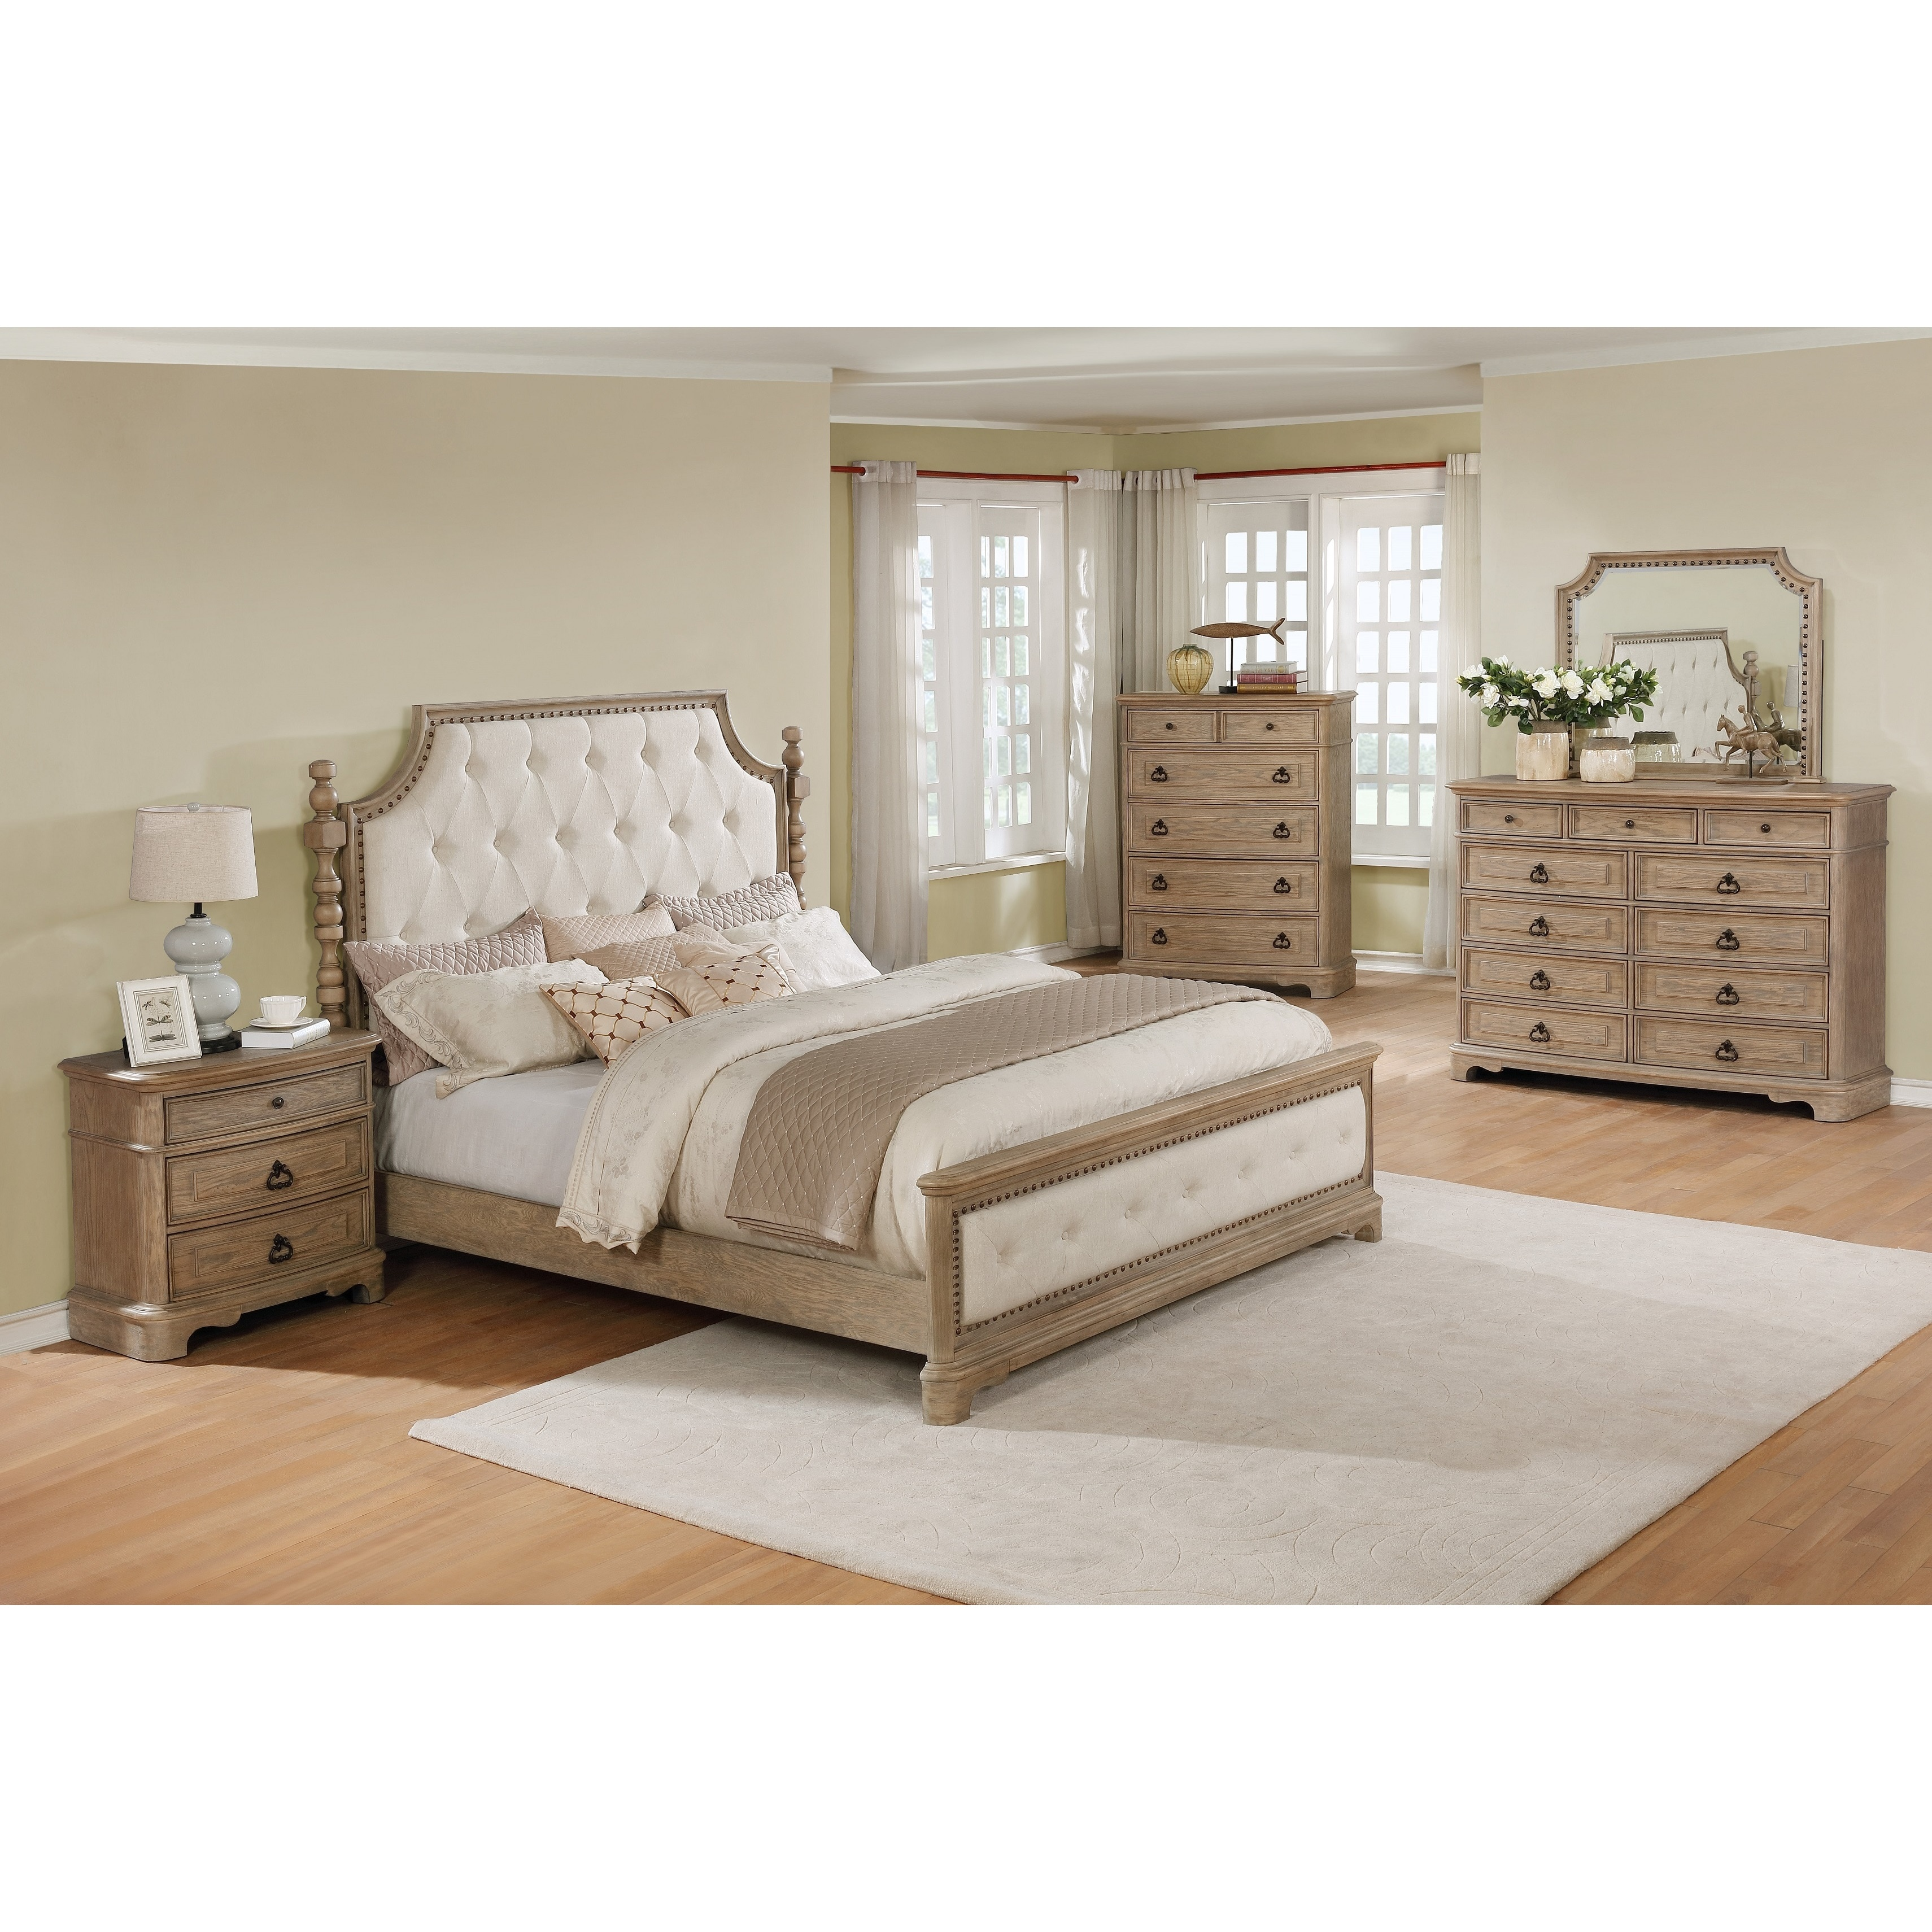 piraeus 296 solid wood construction bedroom set with queen size bed dresser mirror chest and night stand